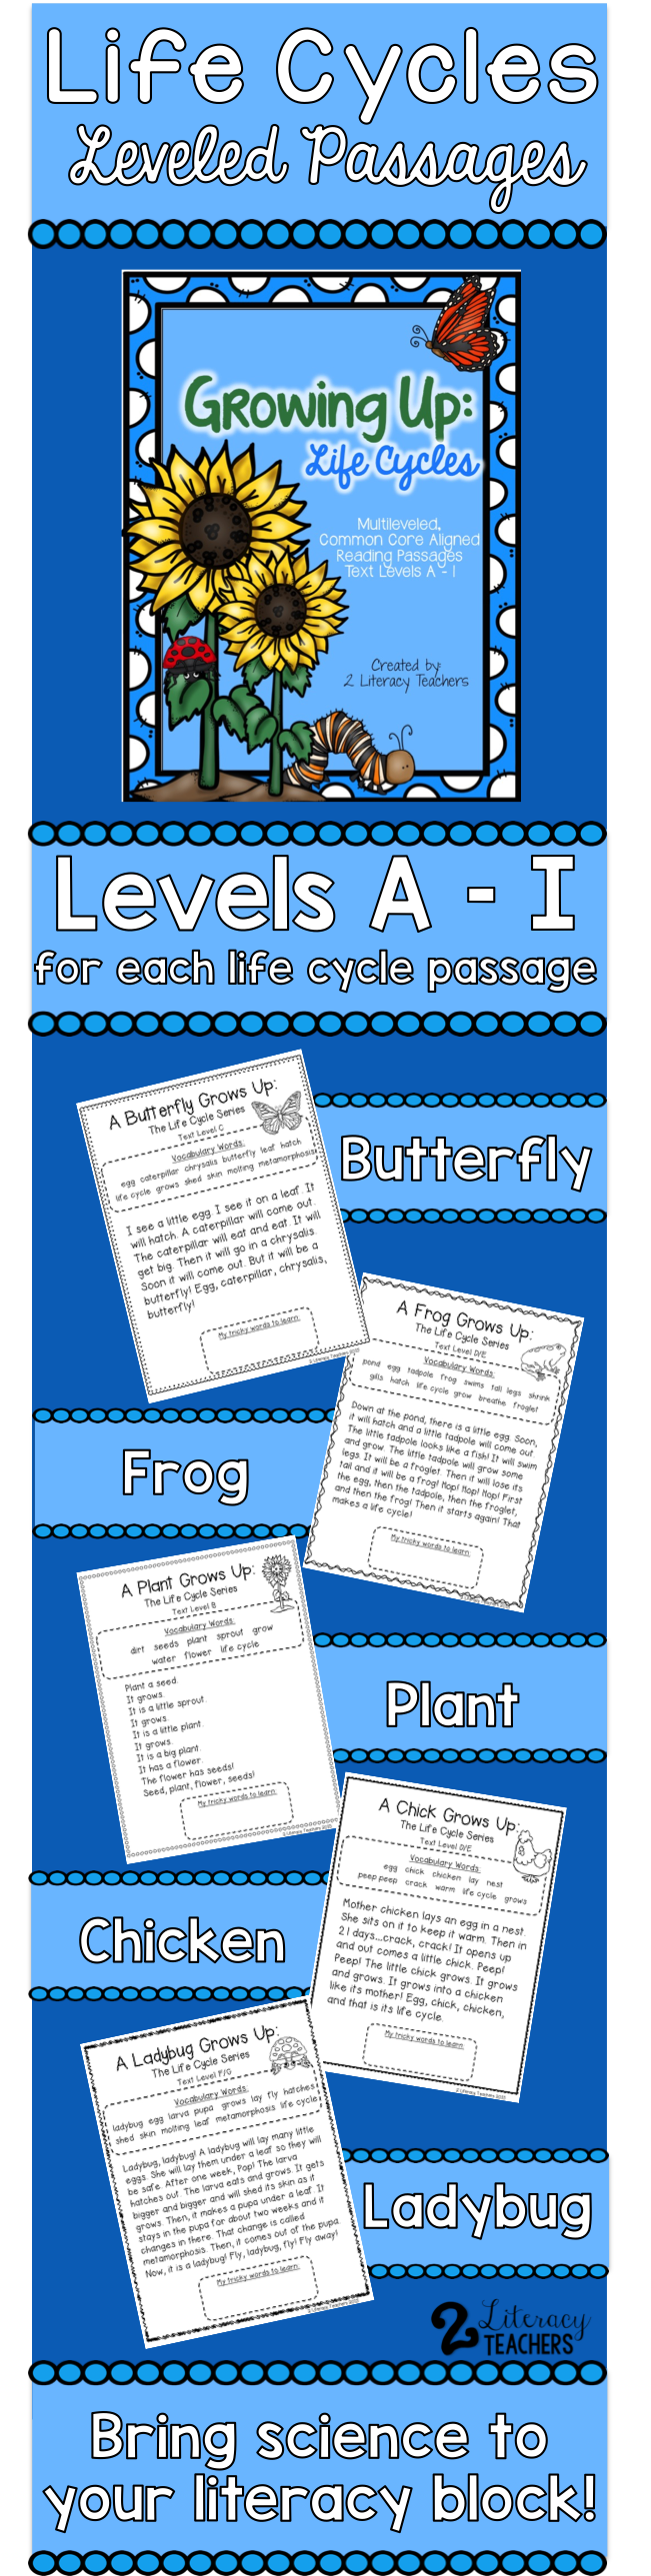 All About Life Cycles Bring Science To Your Literacy Block With These Leveled Passages Have Your St Leveled Reading Passages Reading Passages Science Lessons [ 2577 x 651 Pixel ]